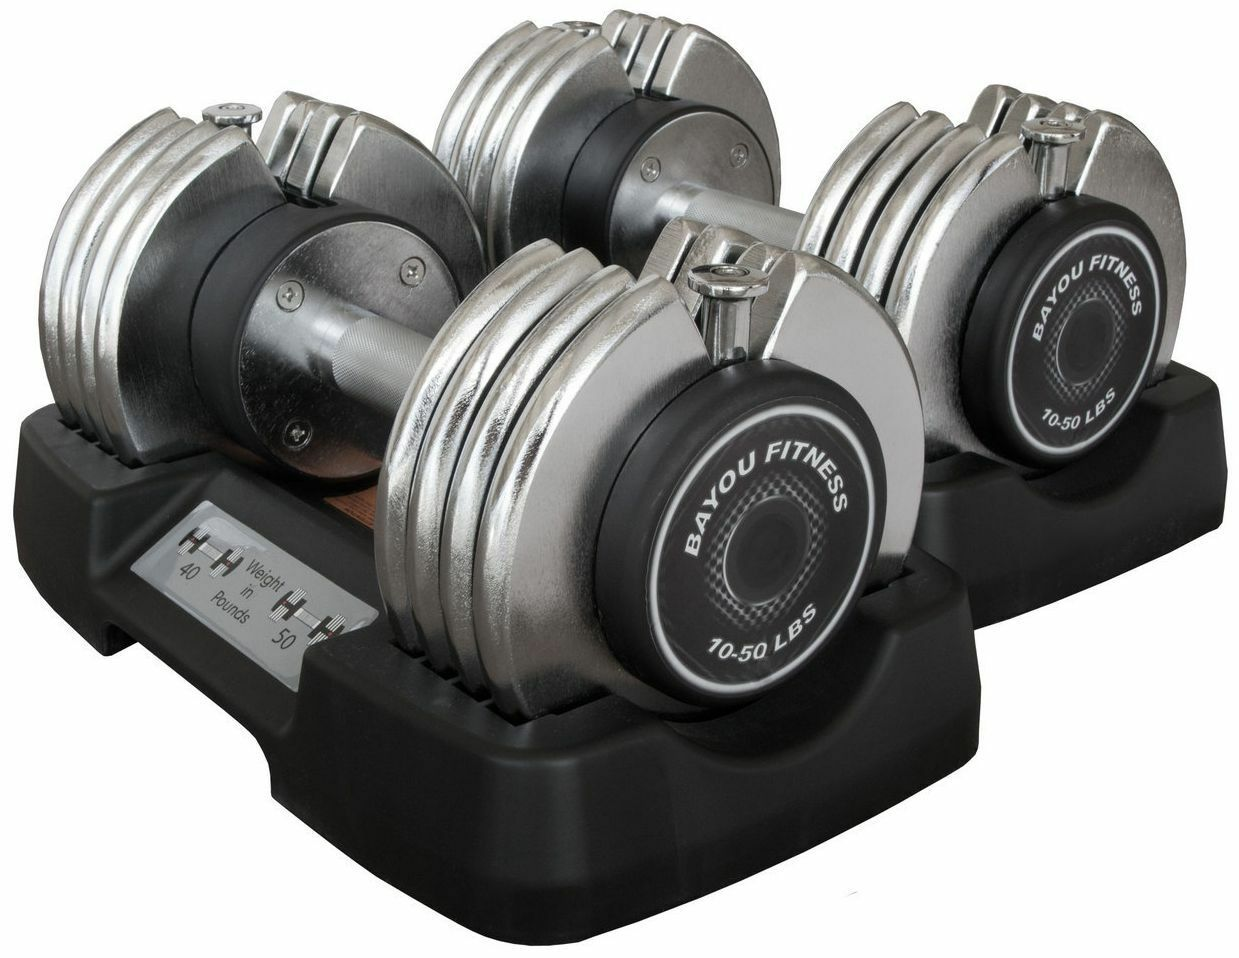 Bayou Fitness 1050 lb Adjustable Dumbbells Set Pair of 2 Weight Exercise NEW